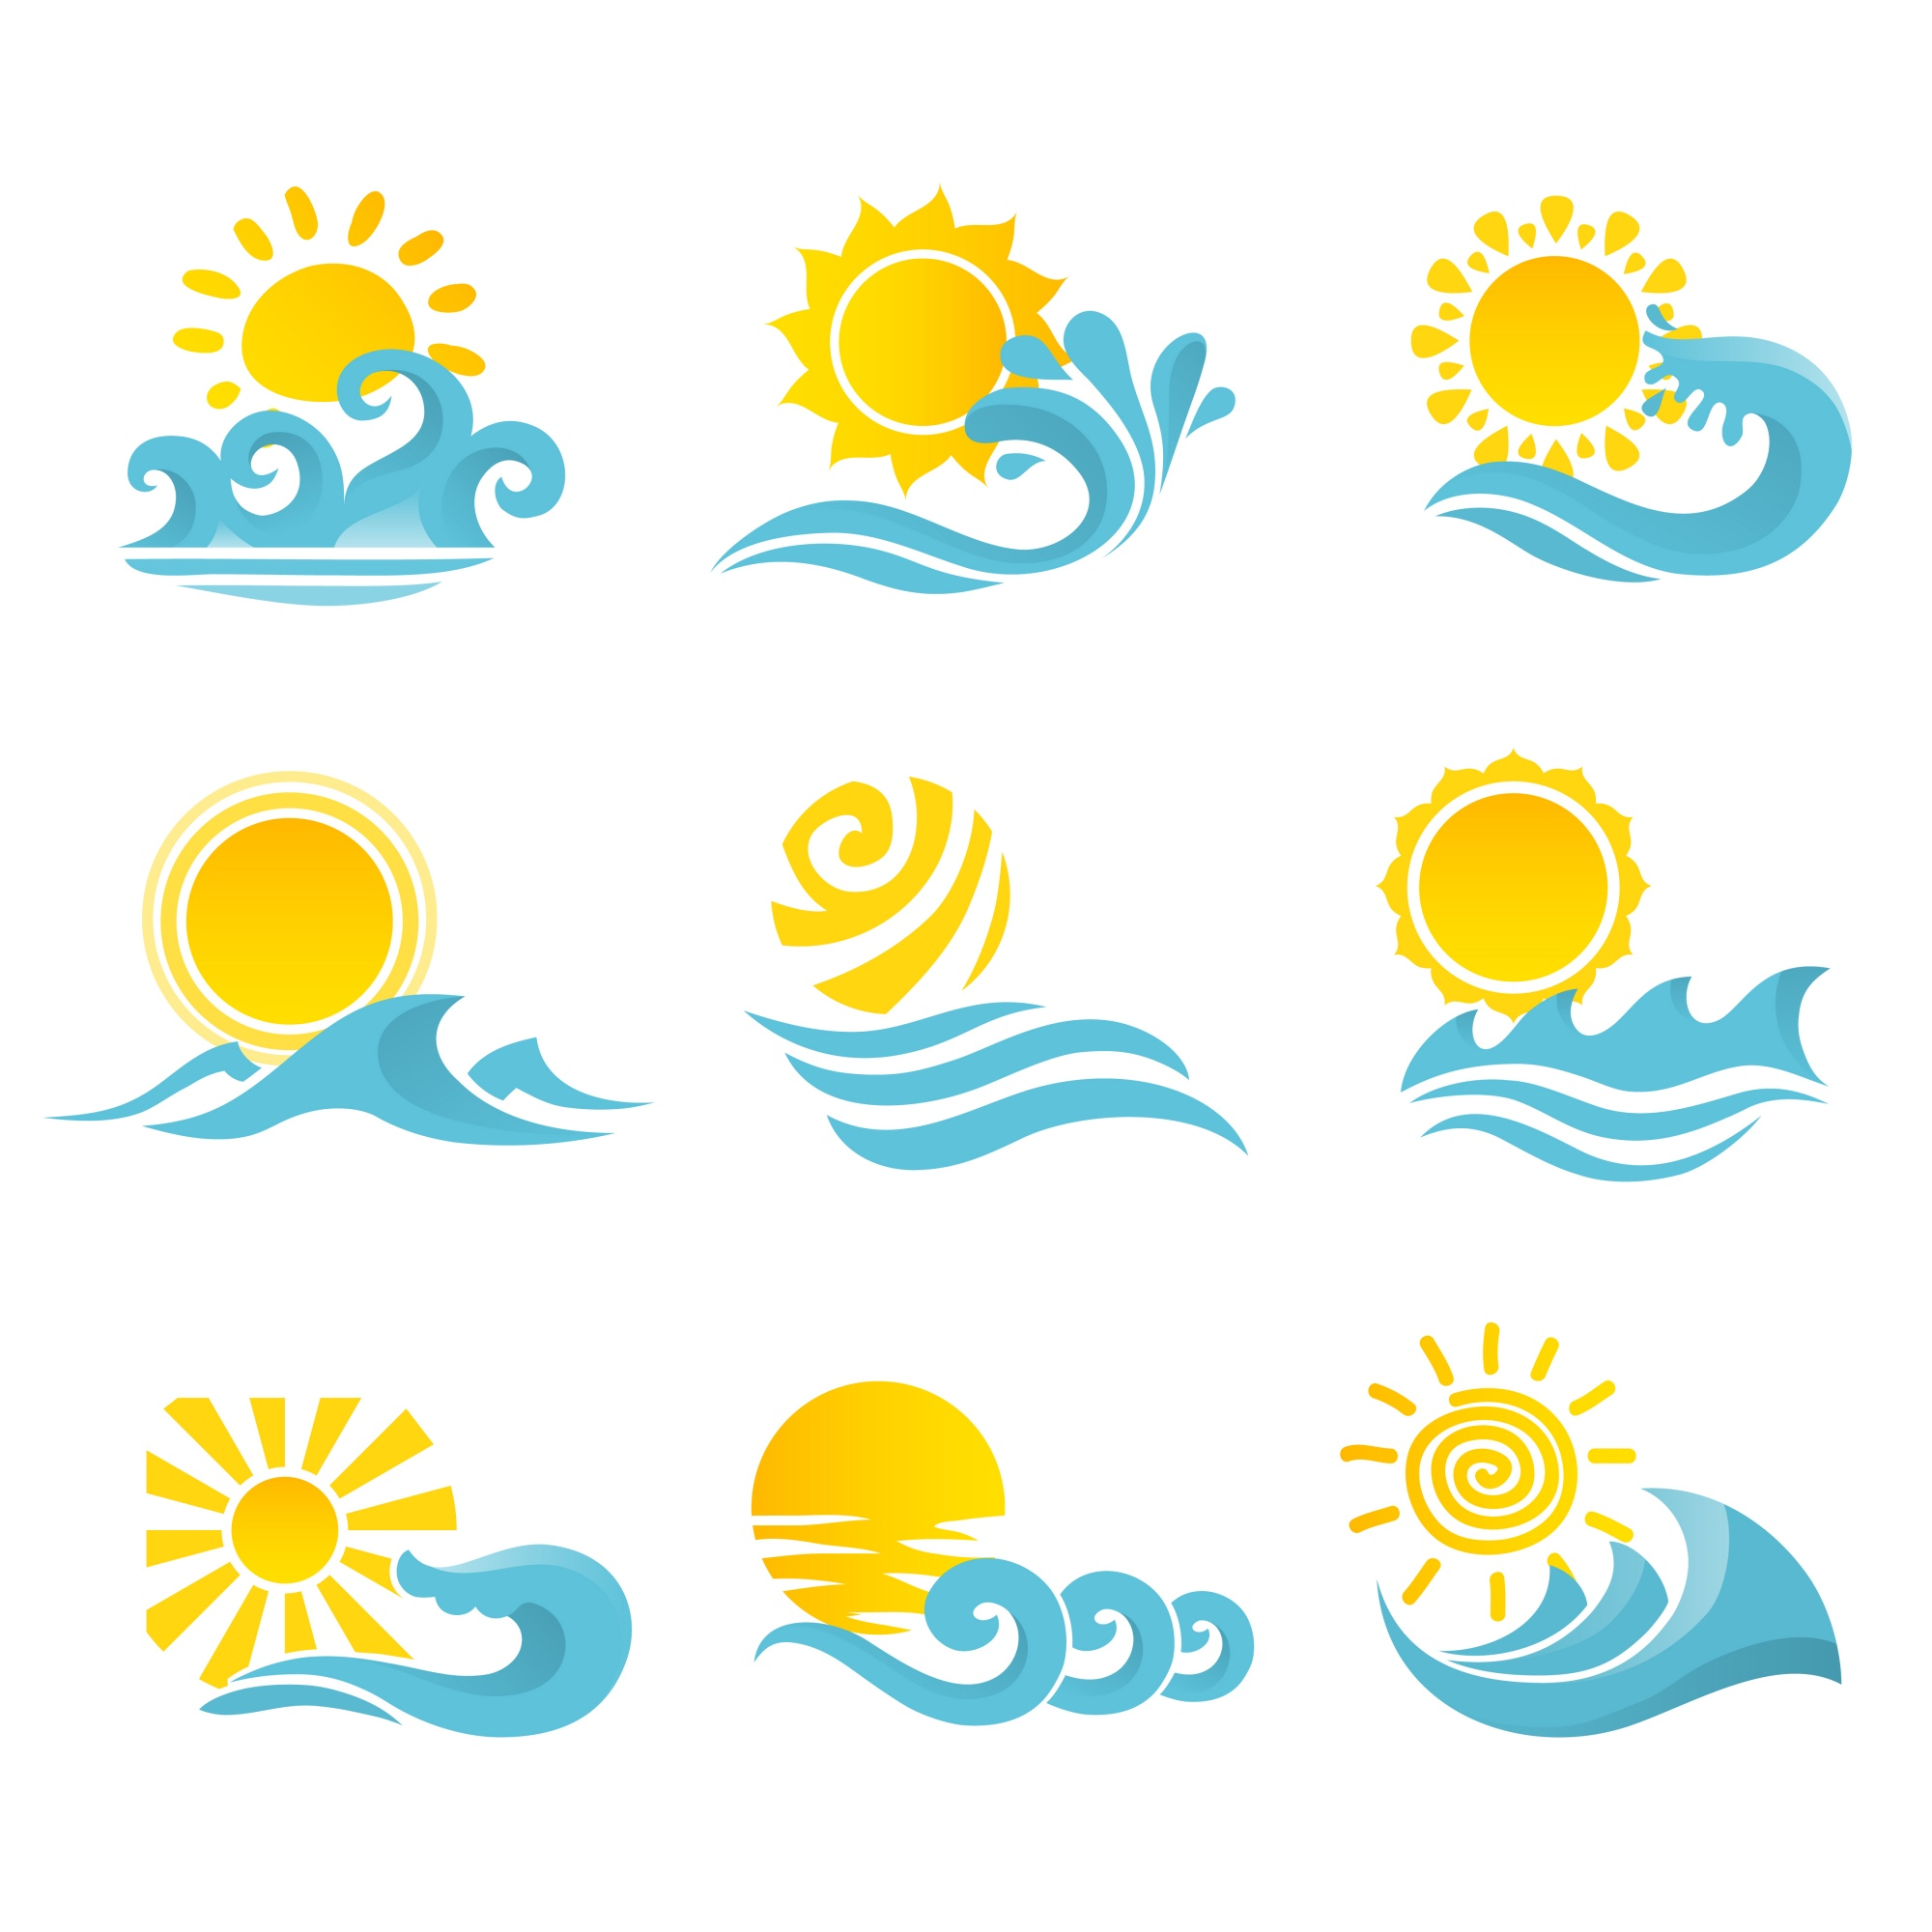 Waves flowing water sea ocean icons set with sun isolated vector illustration